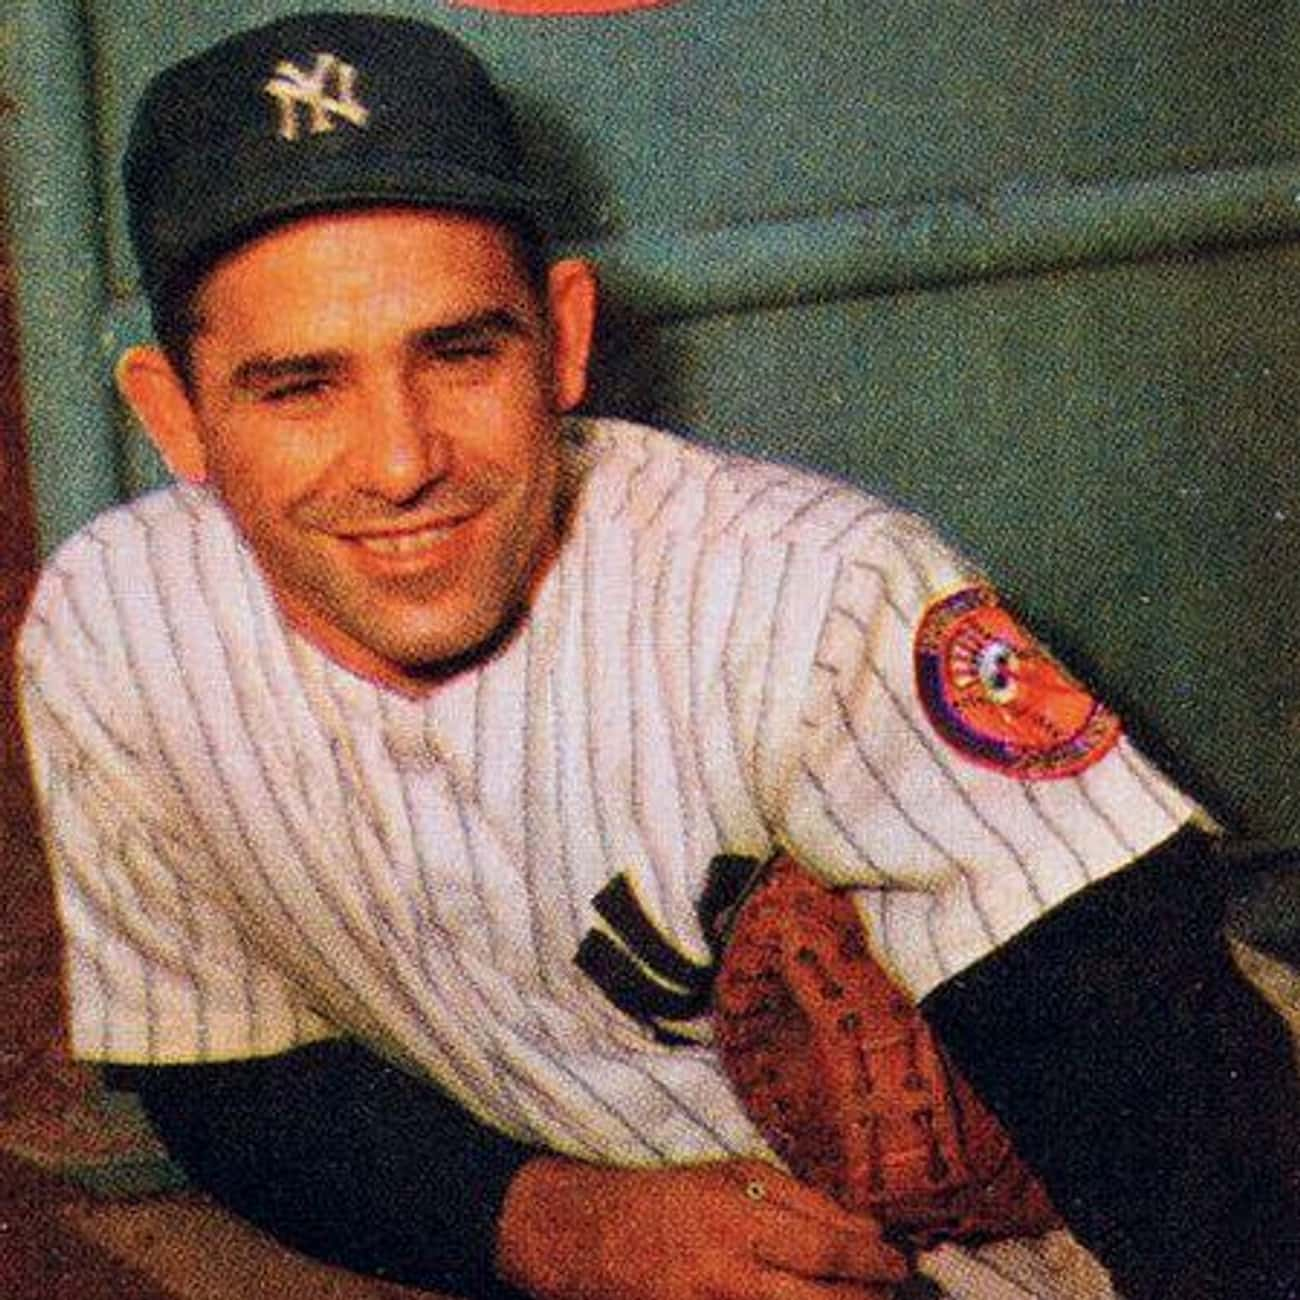 Yogi Berra is listed (or ranked) 4 on the list The Best Athletes Who Wore #8